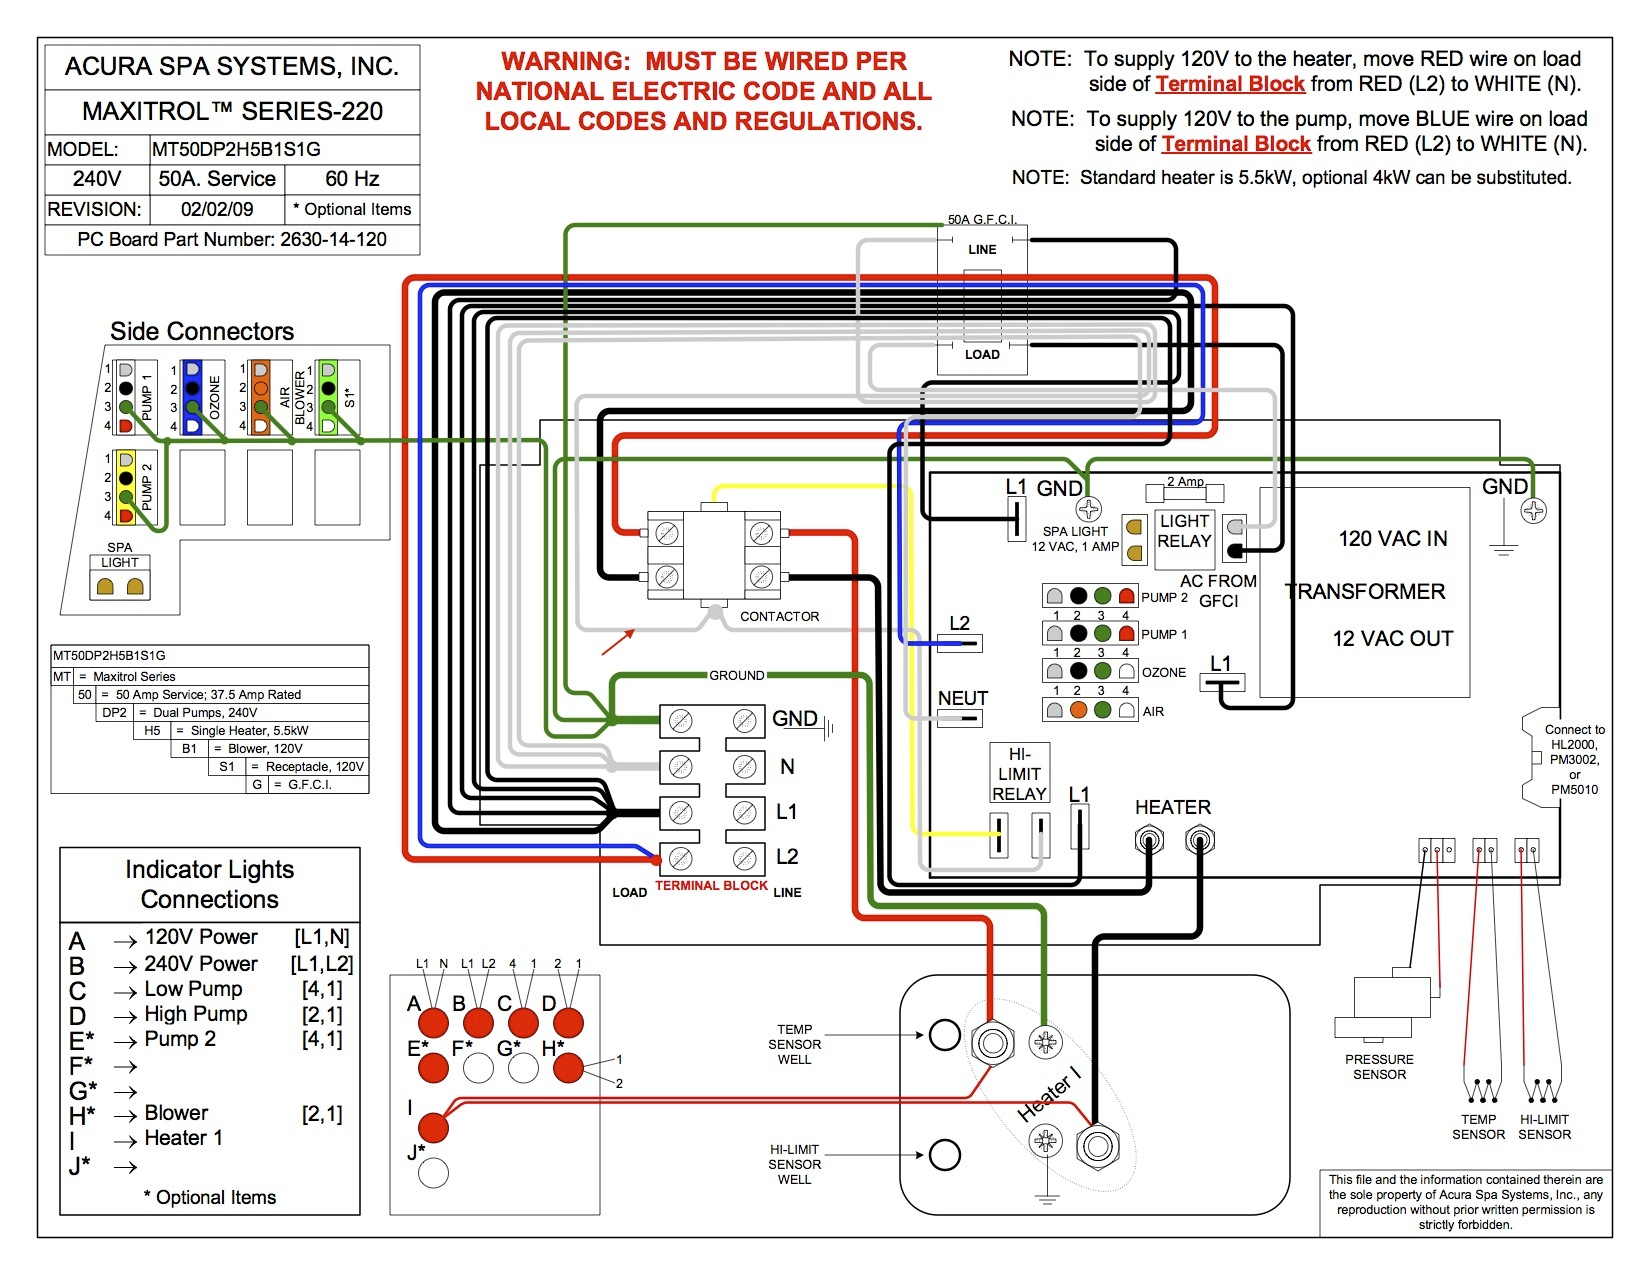 Acura Spa Wiring Diagram MT50DP2H5B1S1G hydro quip wiring diagram sears wiring diagram \u2022 free wiring spa heater wiring diagram at readyjetset.co